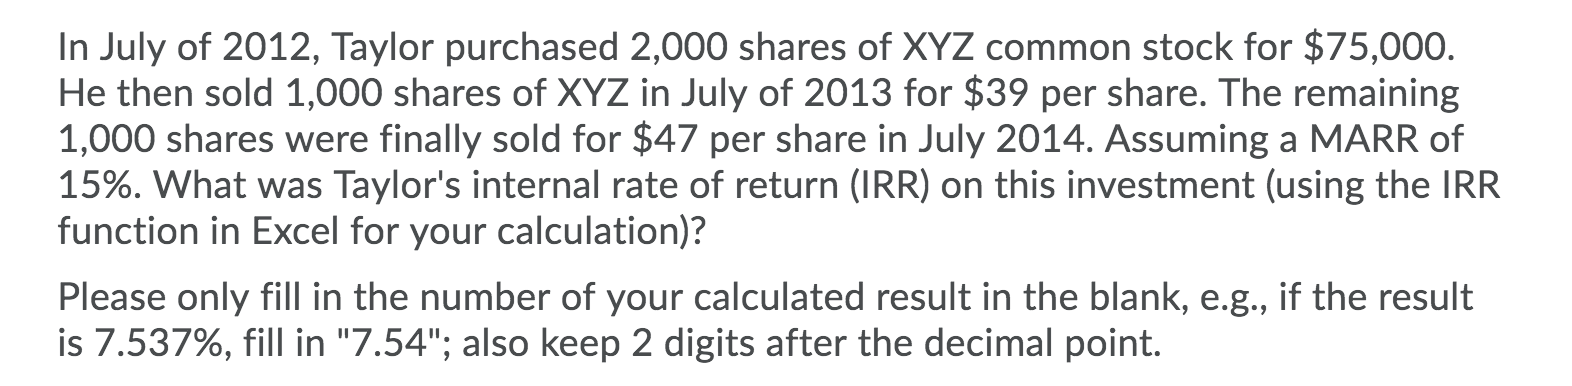 In July of 2012, Taylor purchased 2,000 shares of XYZ common stock for $75,000. He then sold 1,000 shares of XYZ in July of 2